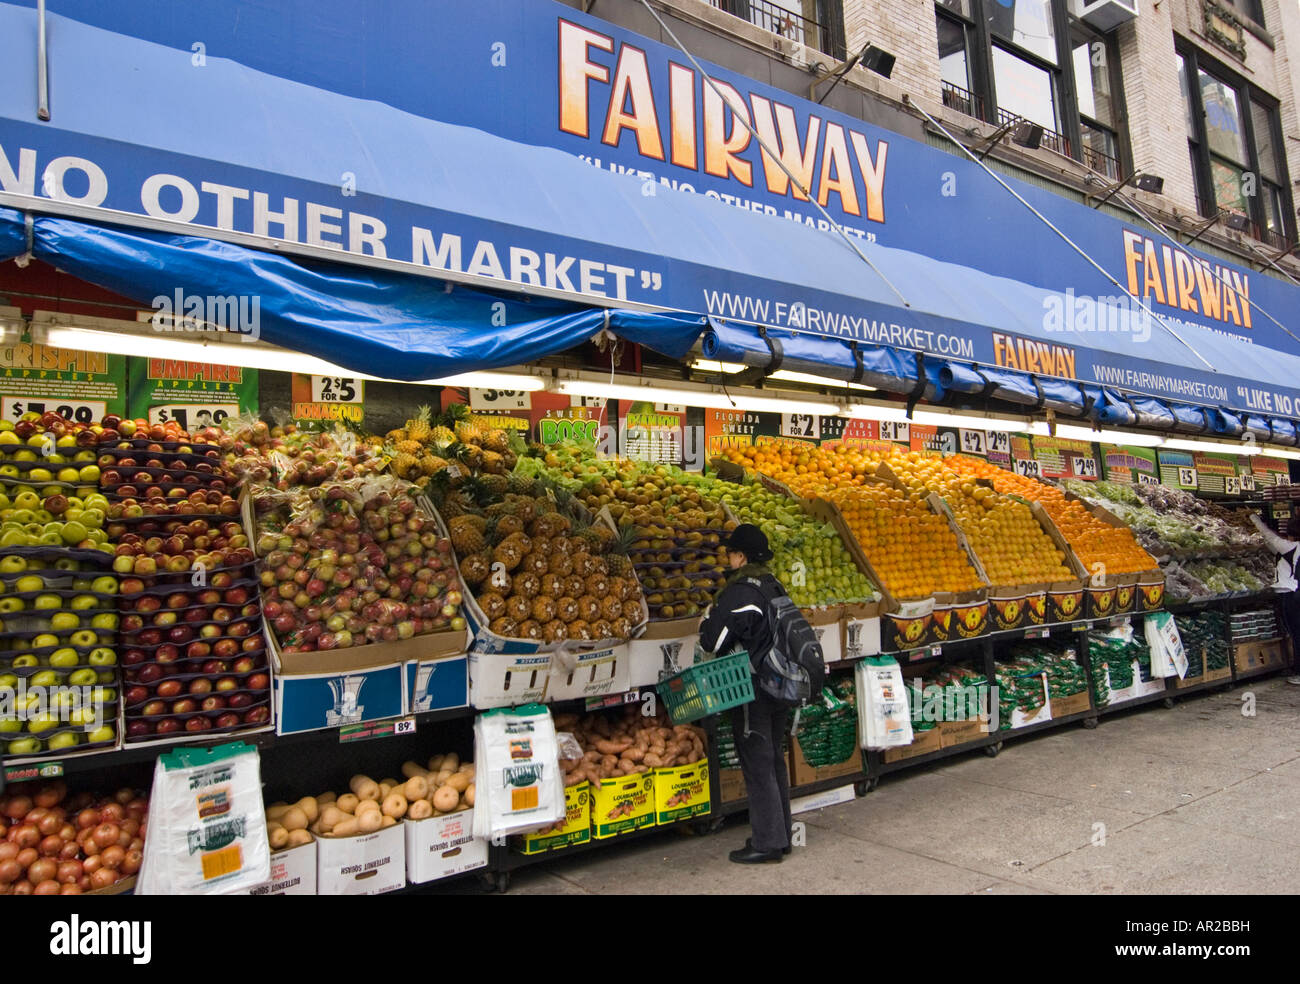 Fairway Market on the Upper West Side of Manhattan - Stock Image